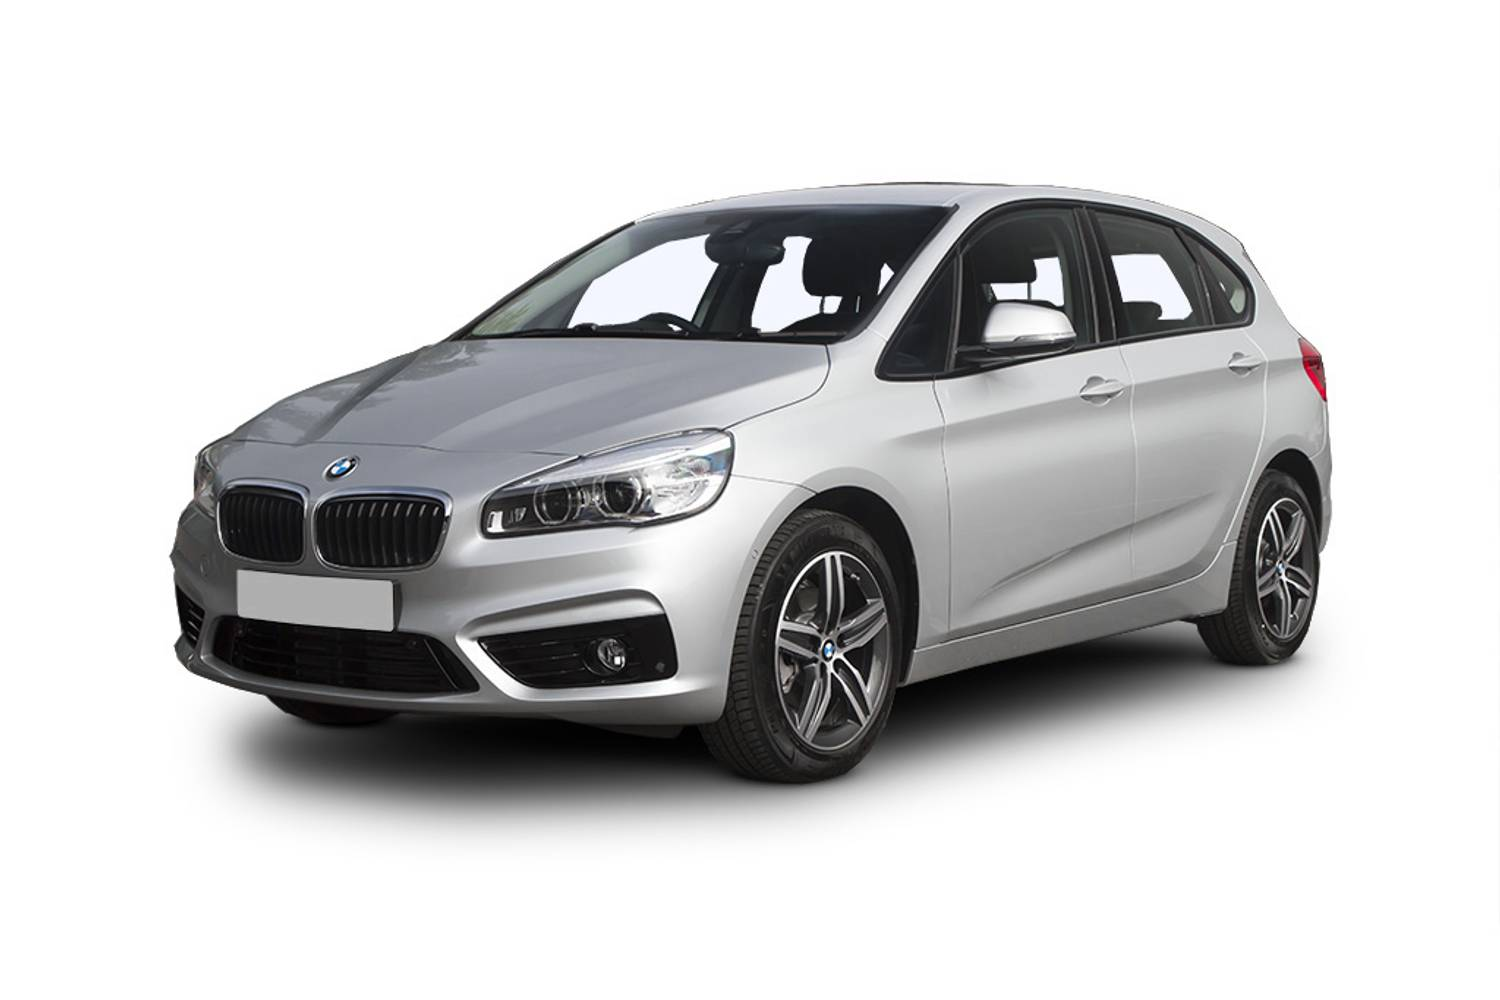 new bmw 2 series diesel active tourer 216d se 5 door nav step auto 2015 for sale. Black Bedroom Furniture Sets. Home Design Ideas